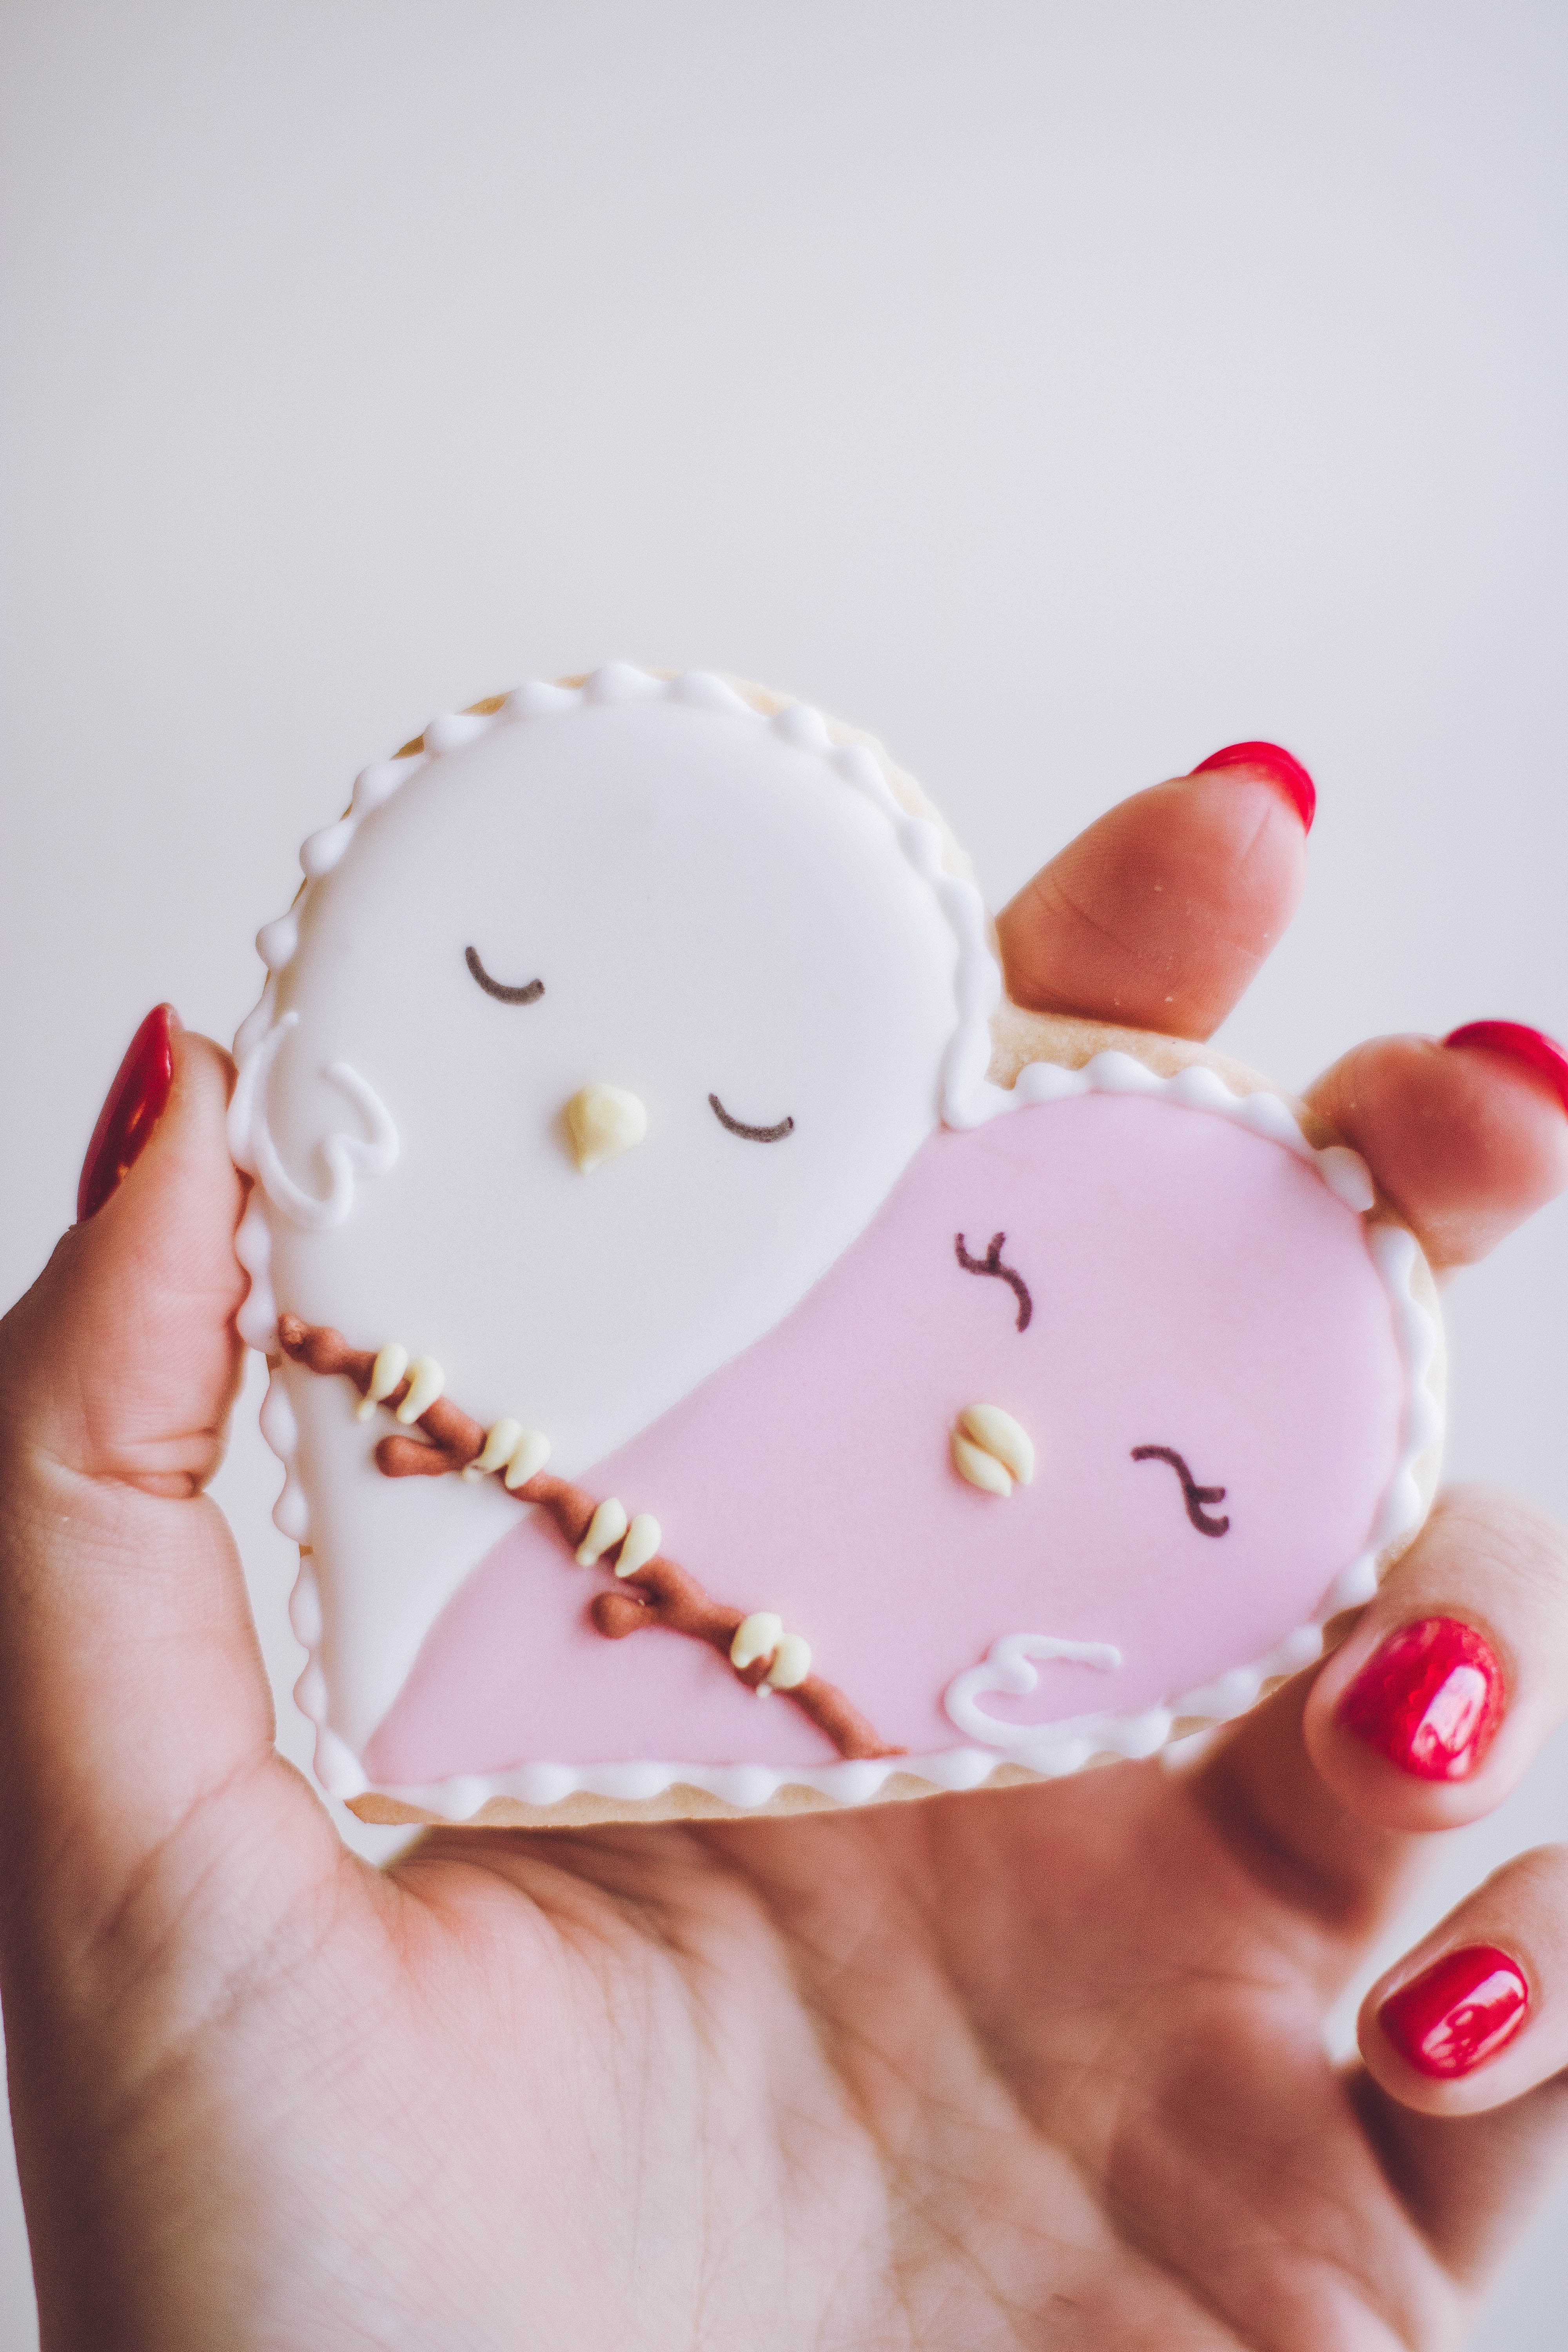 Person holding white and pink heart figure photo